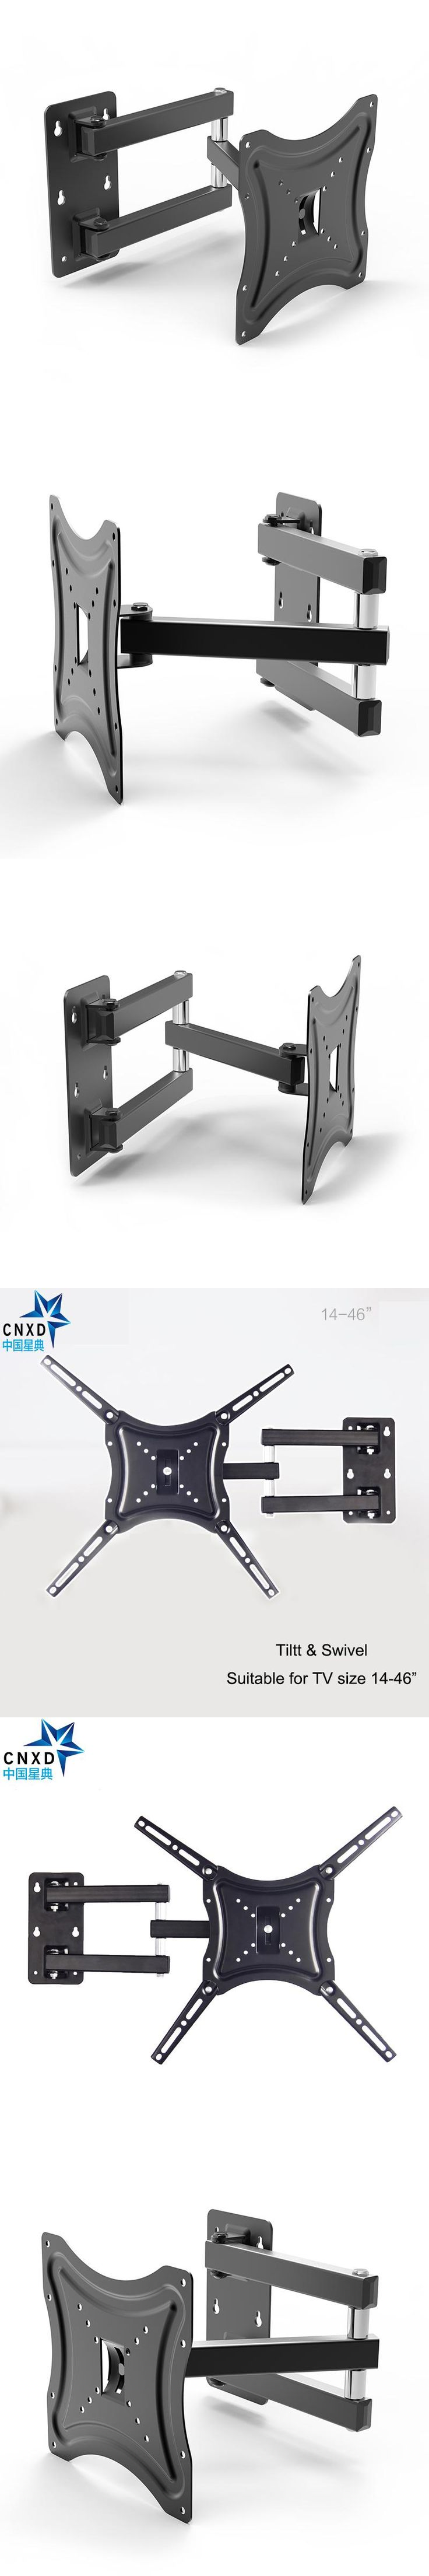 """Retractable Full Motion TV Wall Mount Bracket Wall Stand Adjustable Mount Arm Fit for Plasma Flat LED TV 14""""-46"""" Support 25KG"""